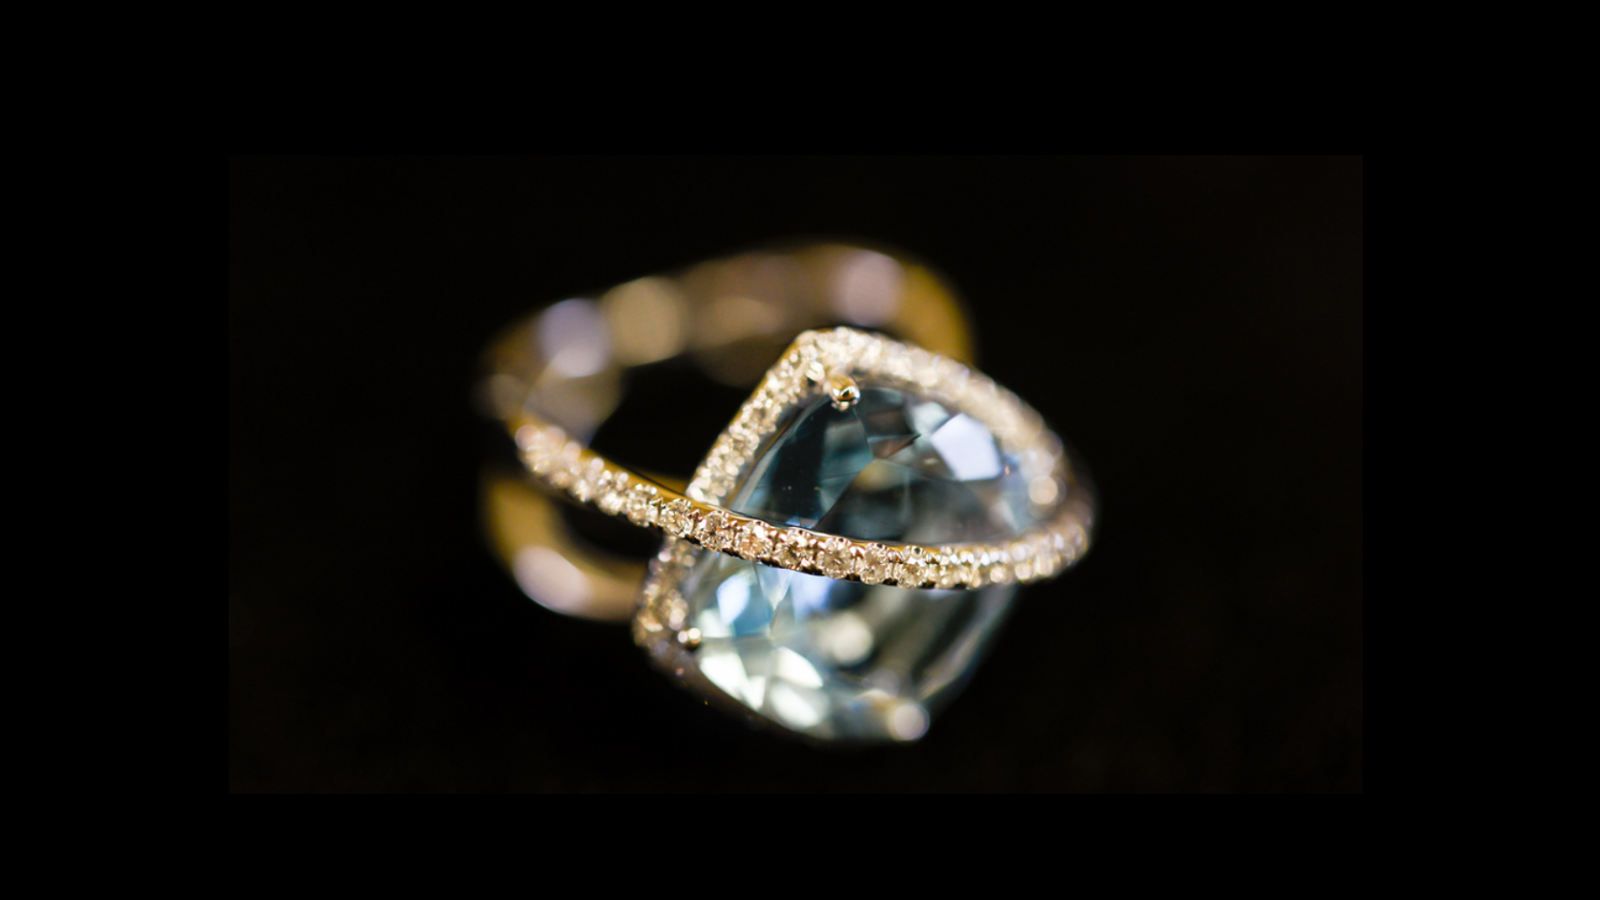 closeup of ring handcrafted by Lisa Marie Kotchey with a dark background